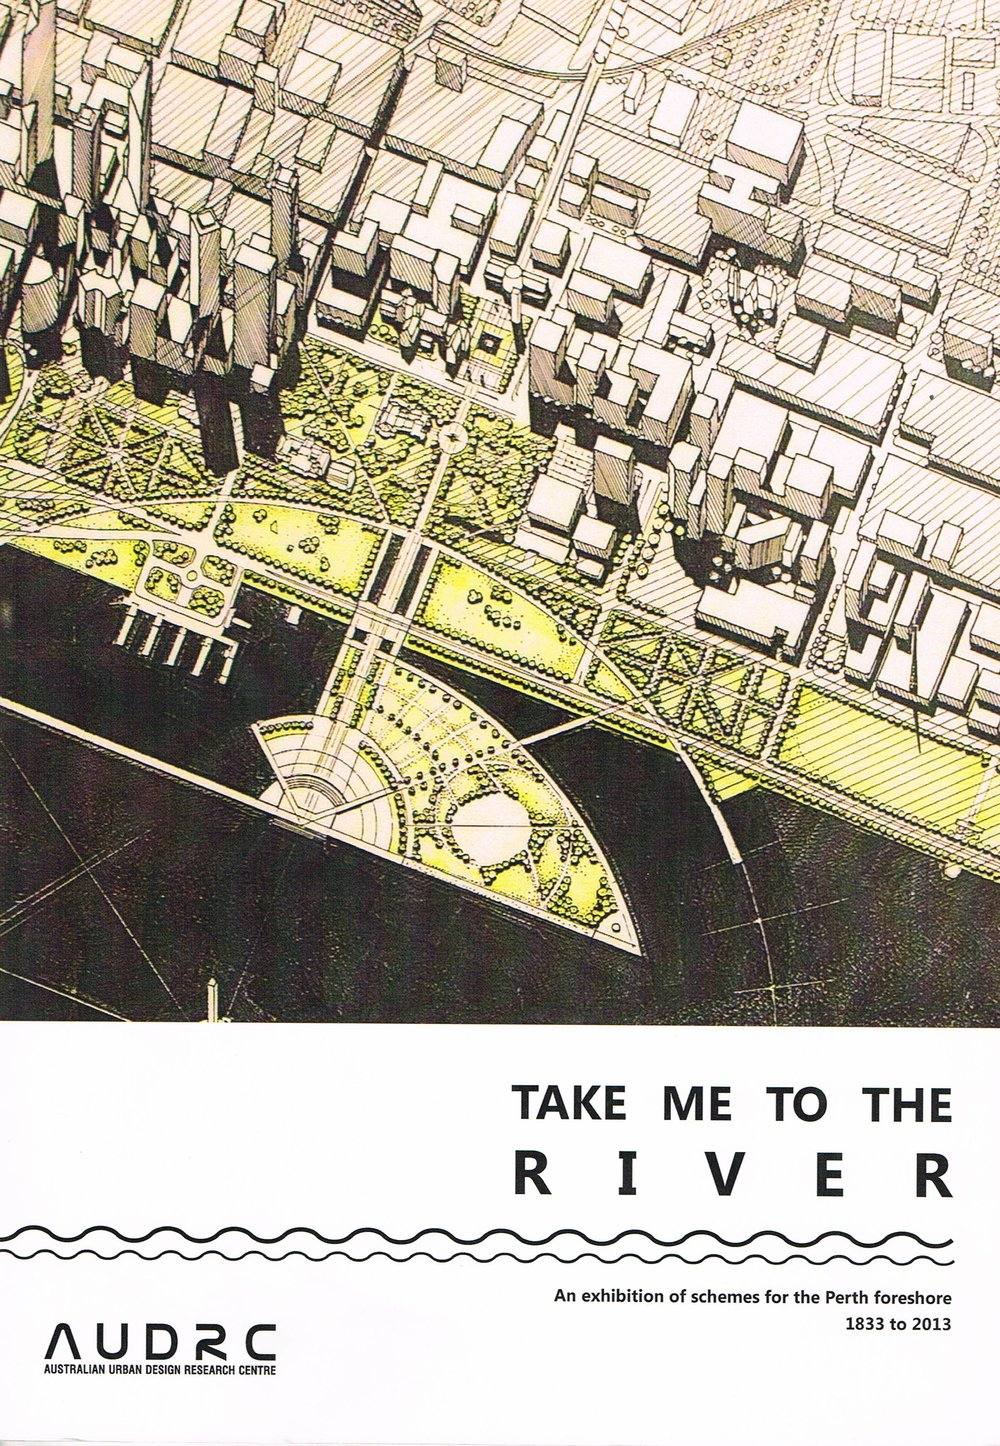 Take Me to the River : An exhibition of schemes for the Perth Foreshore 1833 - 2013 Dr Julian Bolleter